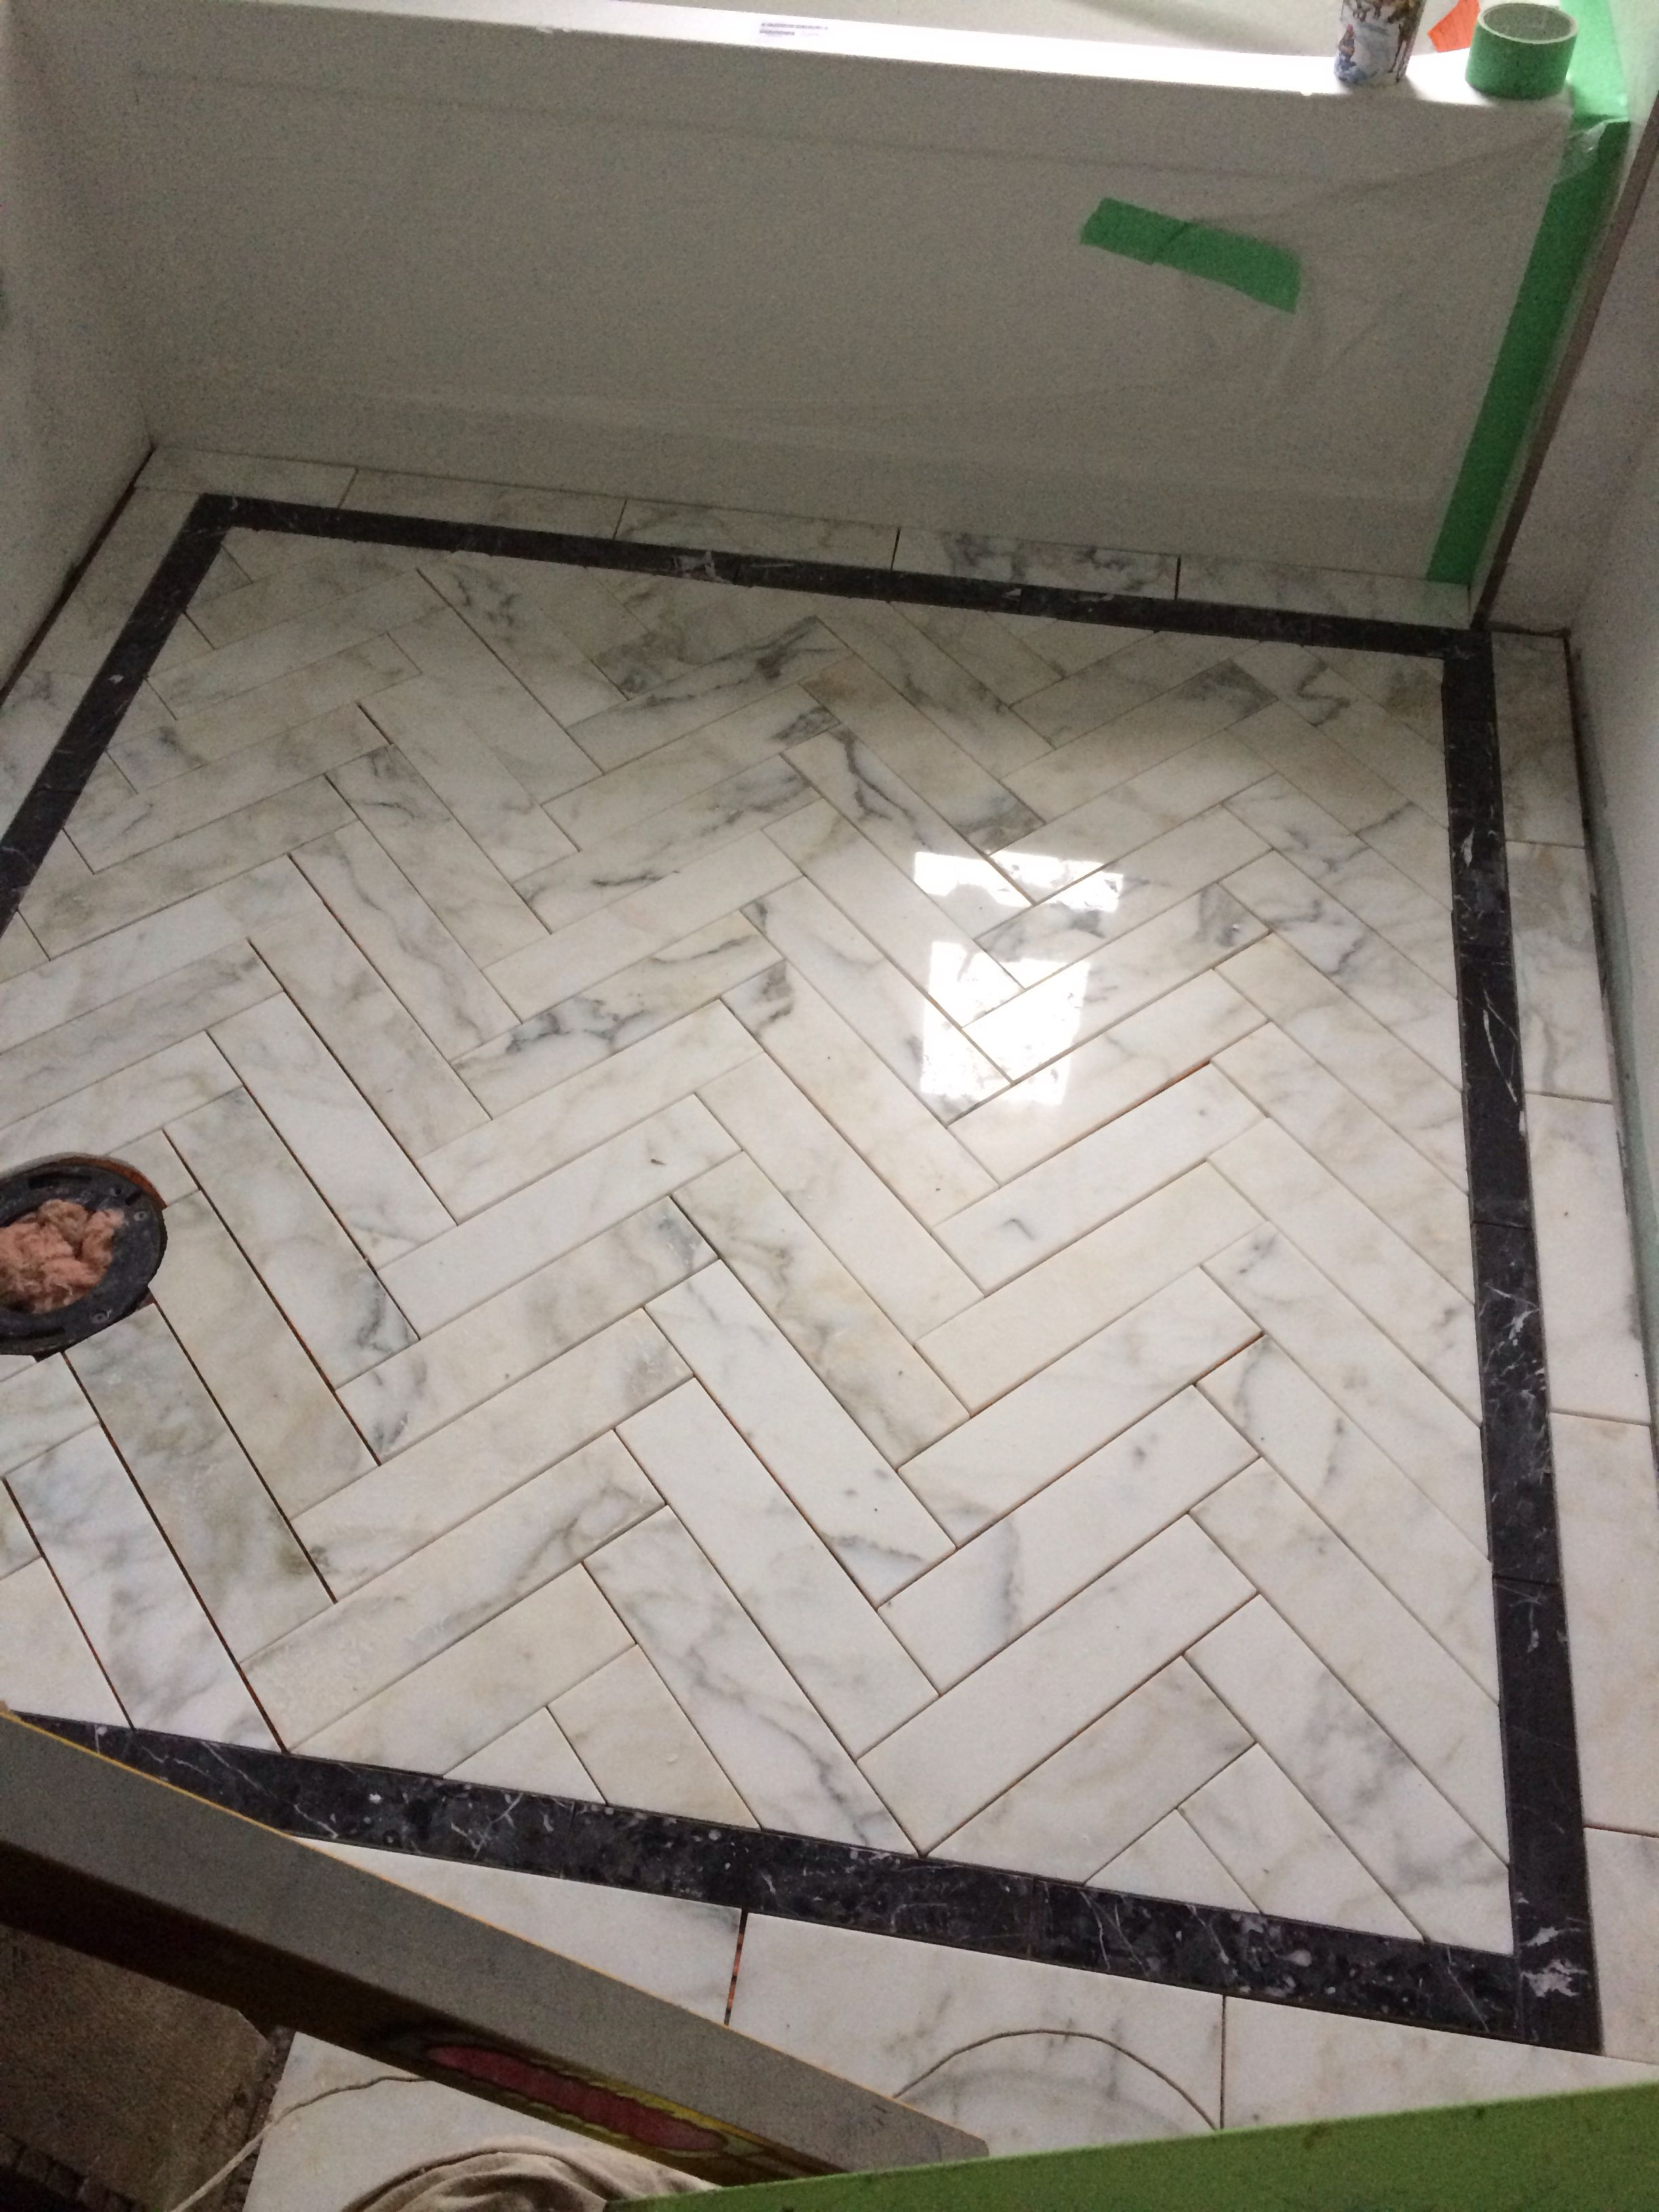 Visual eye candy how to tile a herringbone floor part i - Dress Up Your Bathroom Shower Floor Add A Black Tile Accent Border To Gray Marble Herringbone